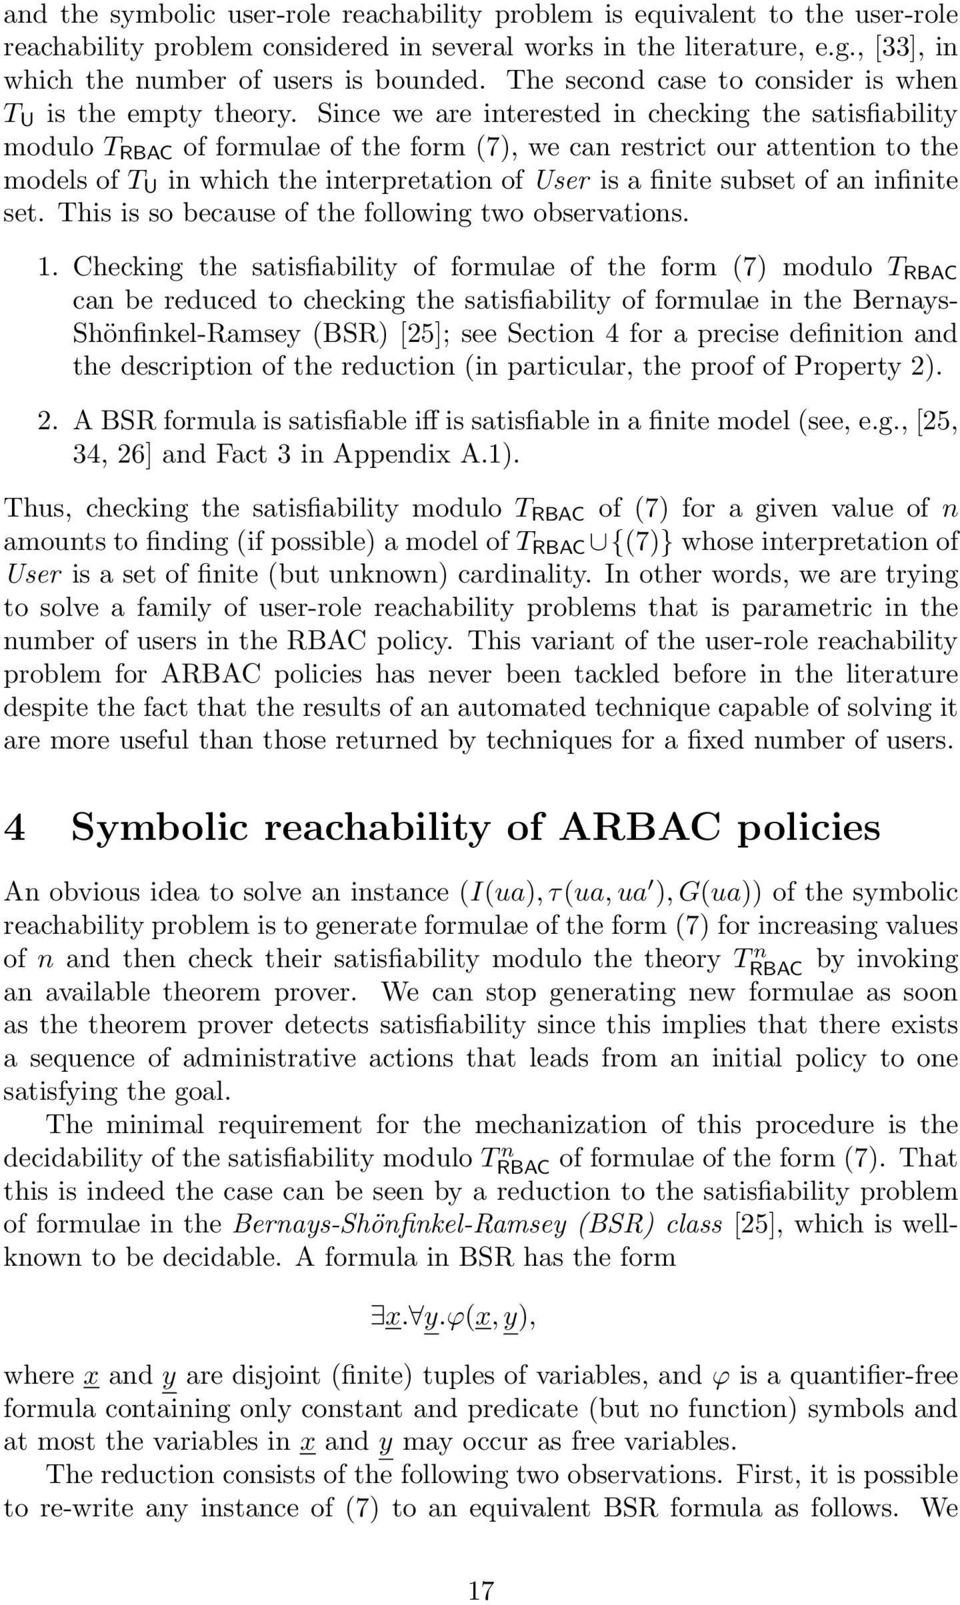 Since we are interested in checking the satisfiability modulo T RBAC of formulae of the form (7), we can restrict our attention to the models of T U in which the interpretation of User is a finite